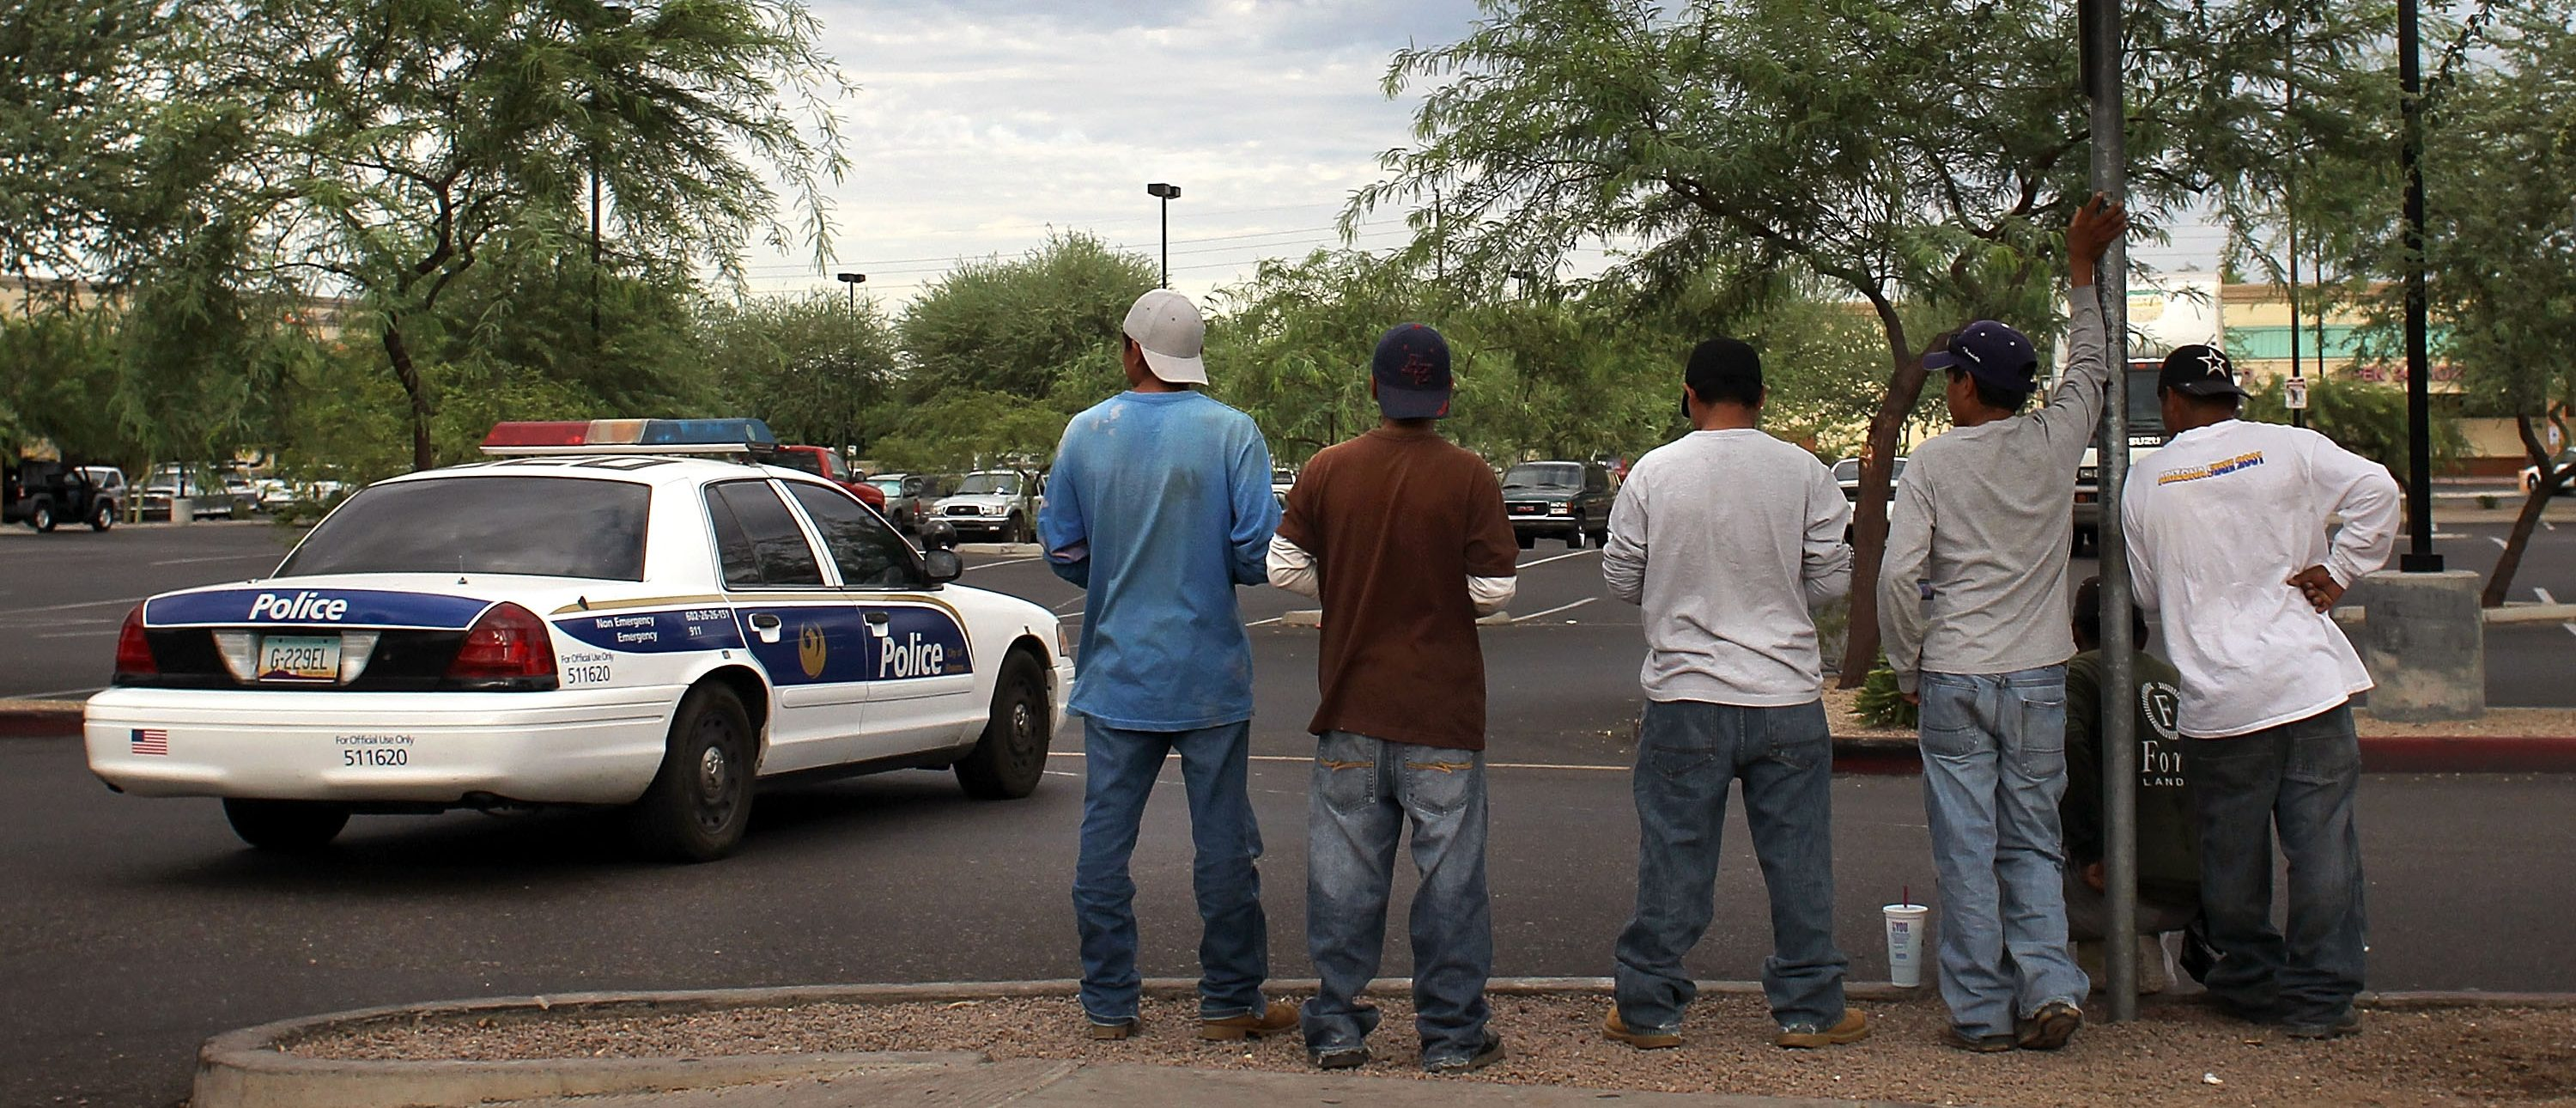 PHOENIX - JULY 26: Undocumented immigrants stand on a curbside awaiting day labor work as a police patrol passes by July 26, 2010 in Phoenix, Arizona. Arizona's new immigration enforcement law SB 1070 is due to go into effect Thursday and has caused widespread fear in the state's Latino community that Hispanics will be racially profiled by local police. In addition to criminalizing immigration status on a state level, the provision also makes it a crime for undocumented immigrants to